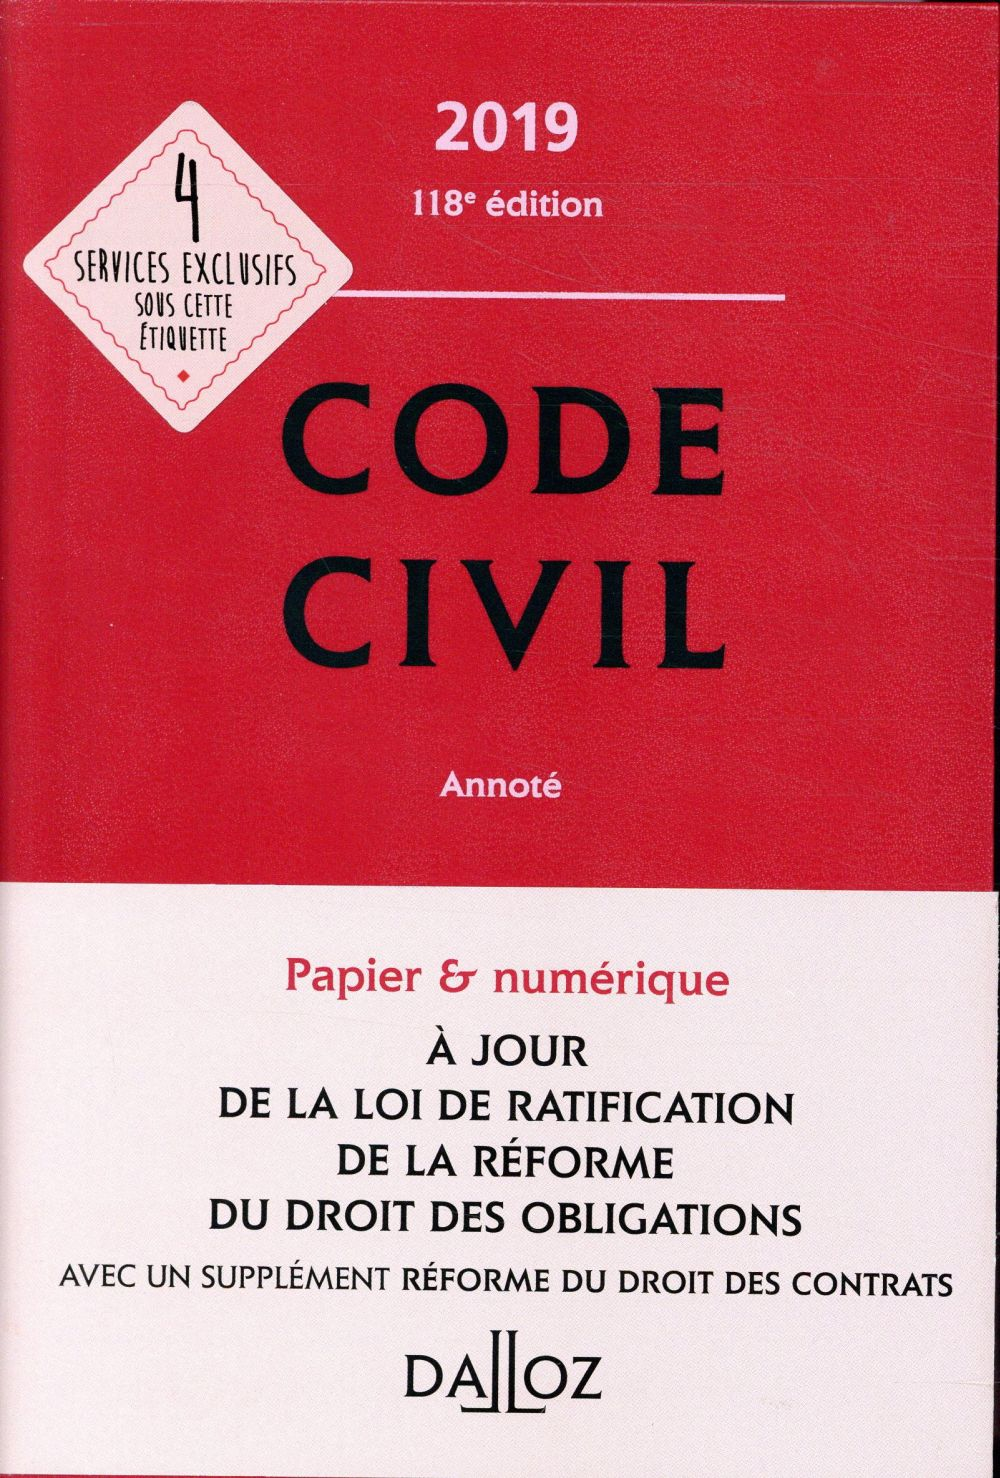 Code civil annoté (édition 2019)